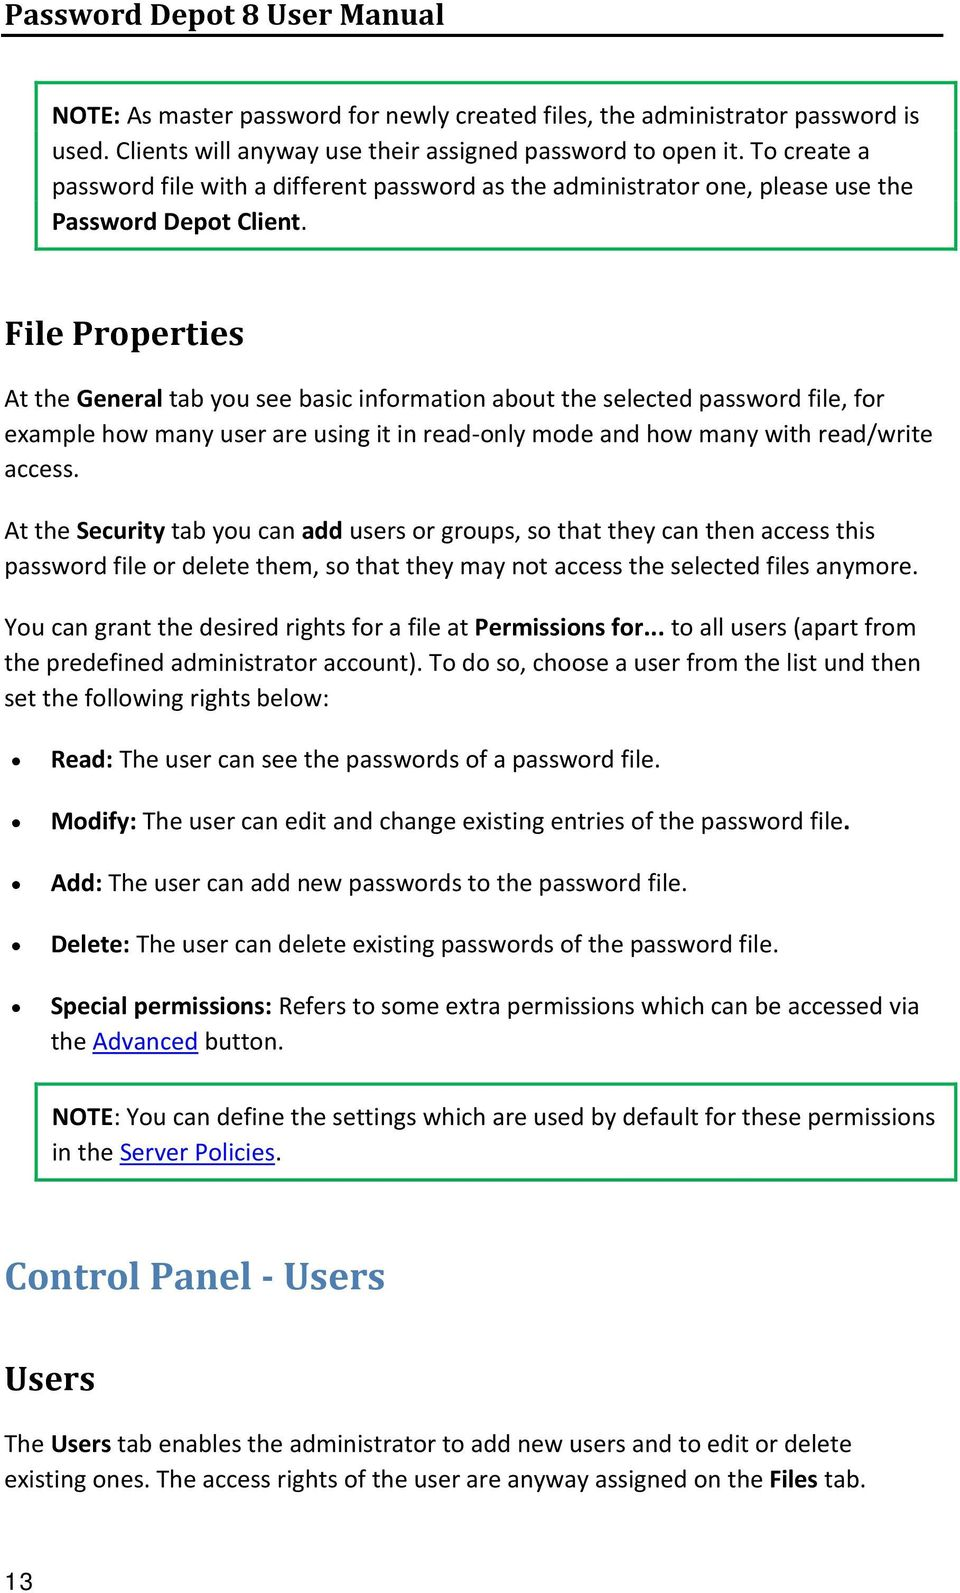 File Properties At the General tab you see basic information about the selected password file, for example how many user are using it in read-only mode and how many with read/write access.